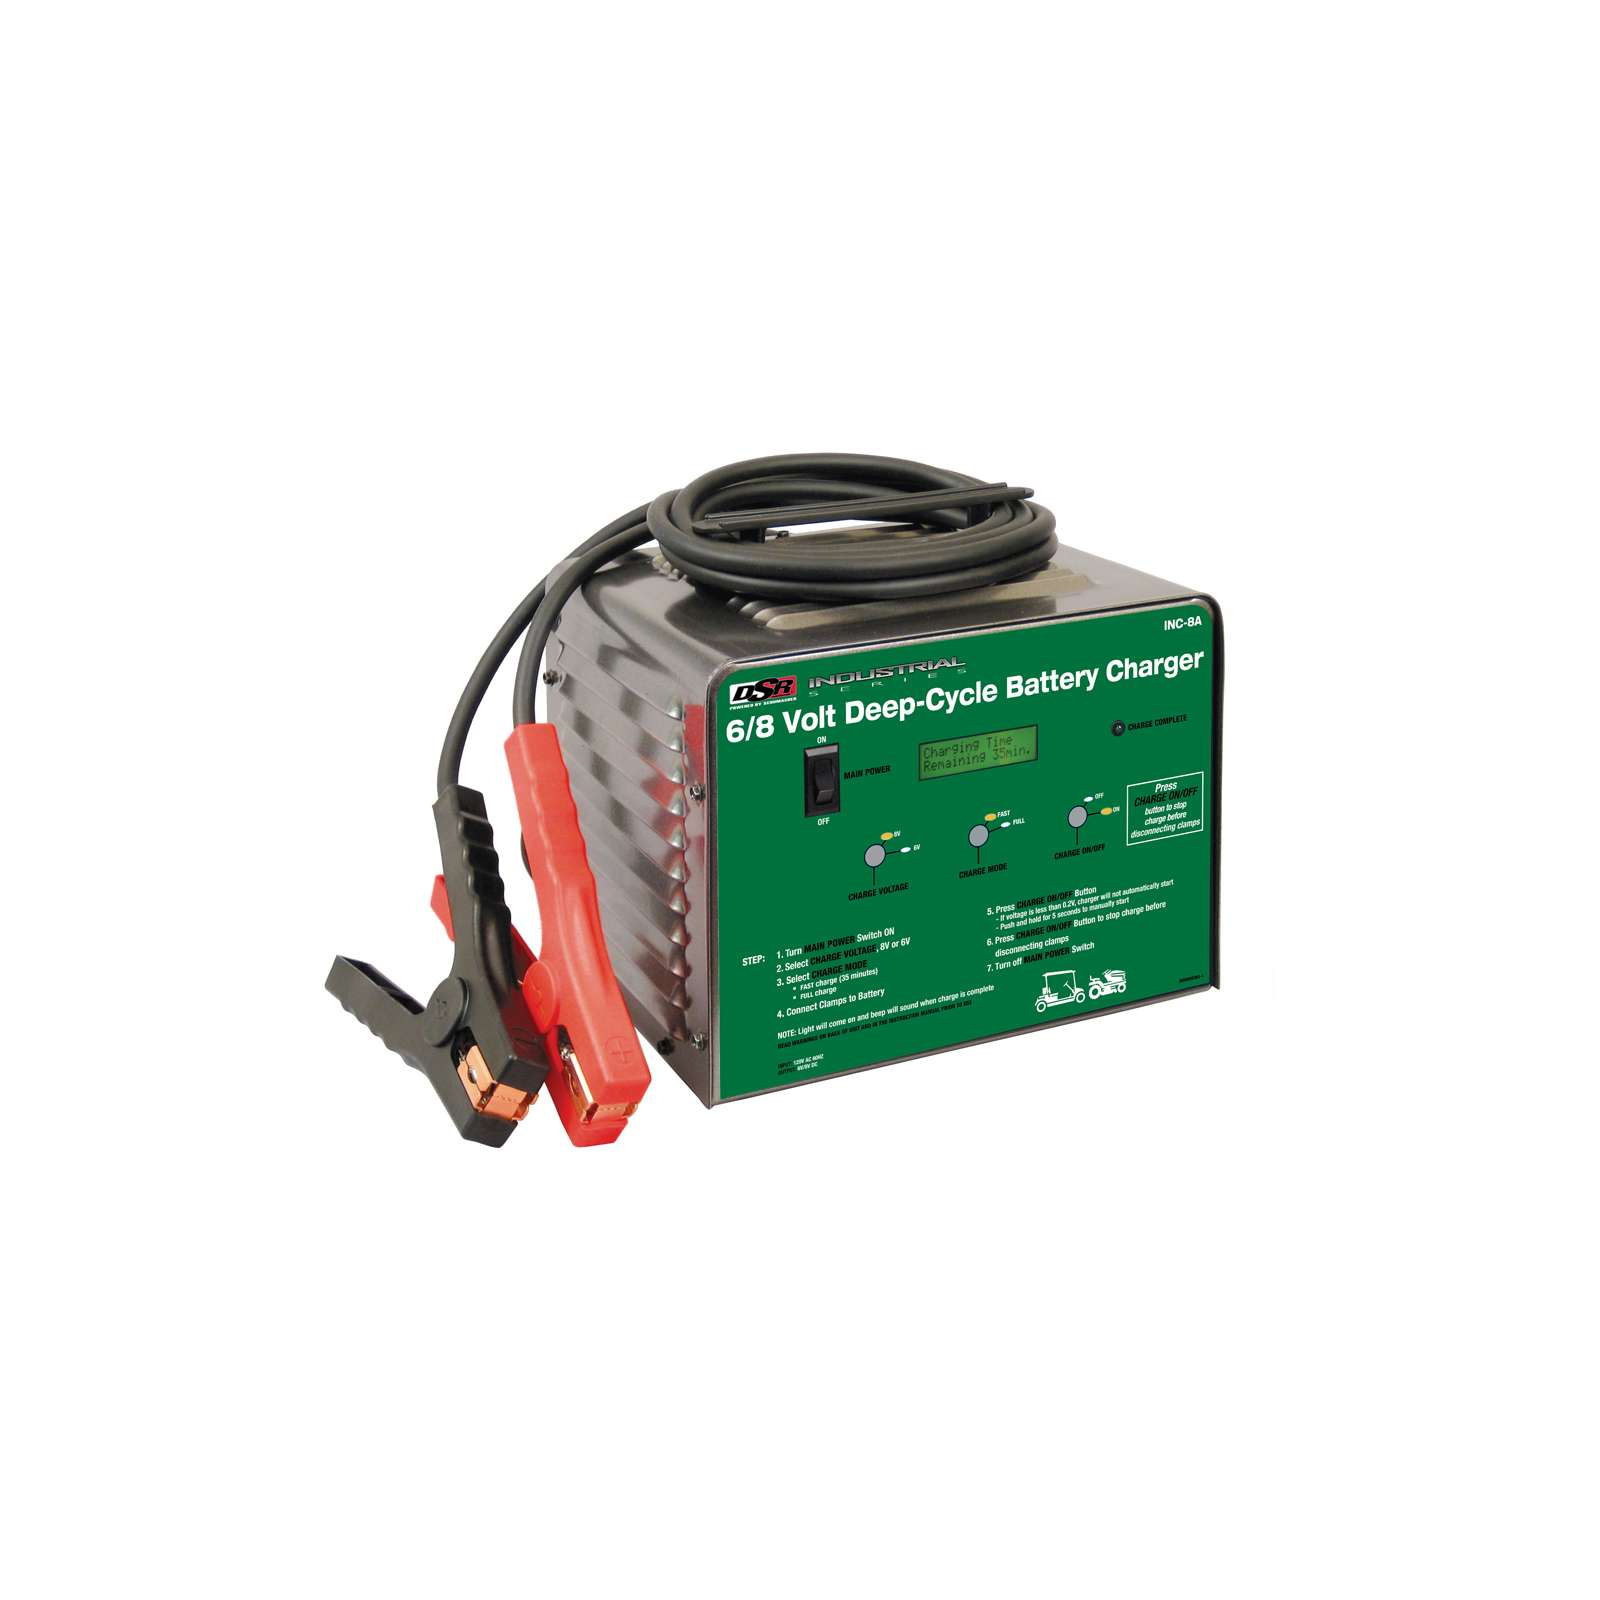 schumacher inc 8a 80 amp deep cycle battery charger ebay. Black Bedroom Furniture Sets. Home Design Ideas